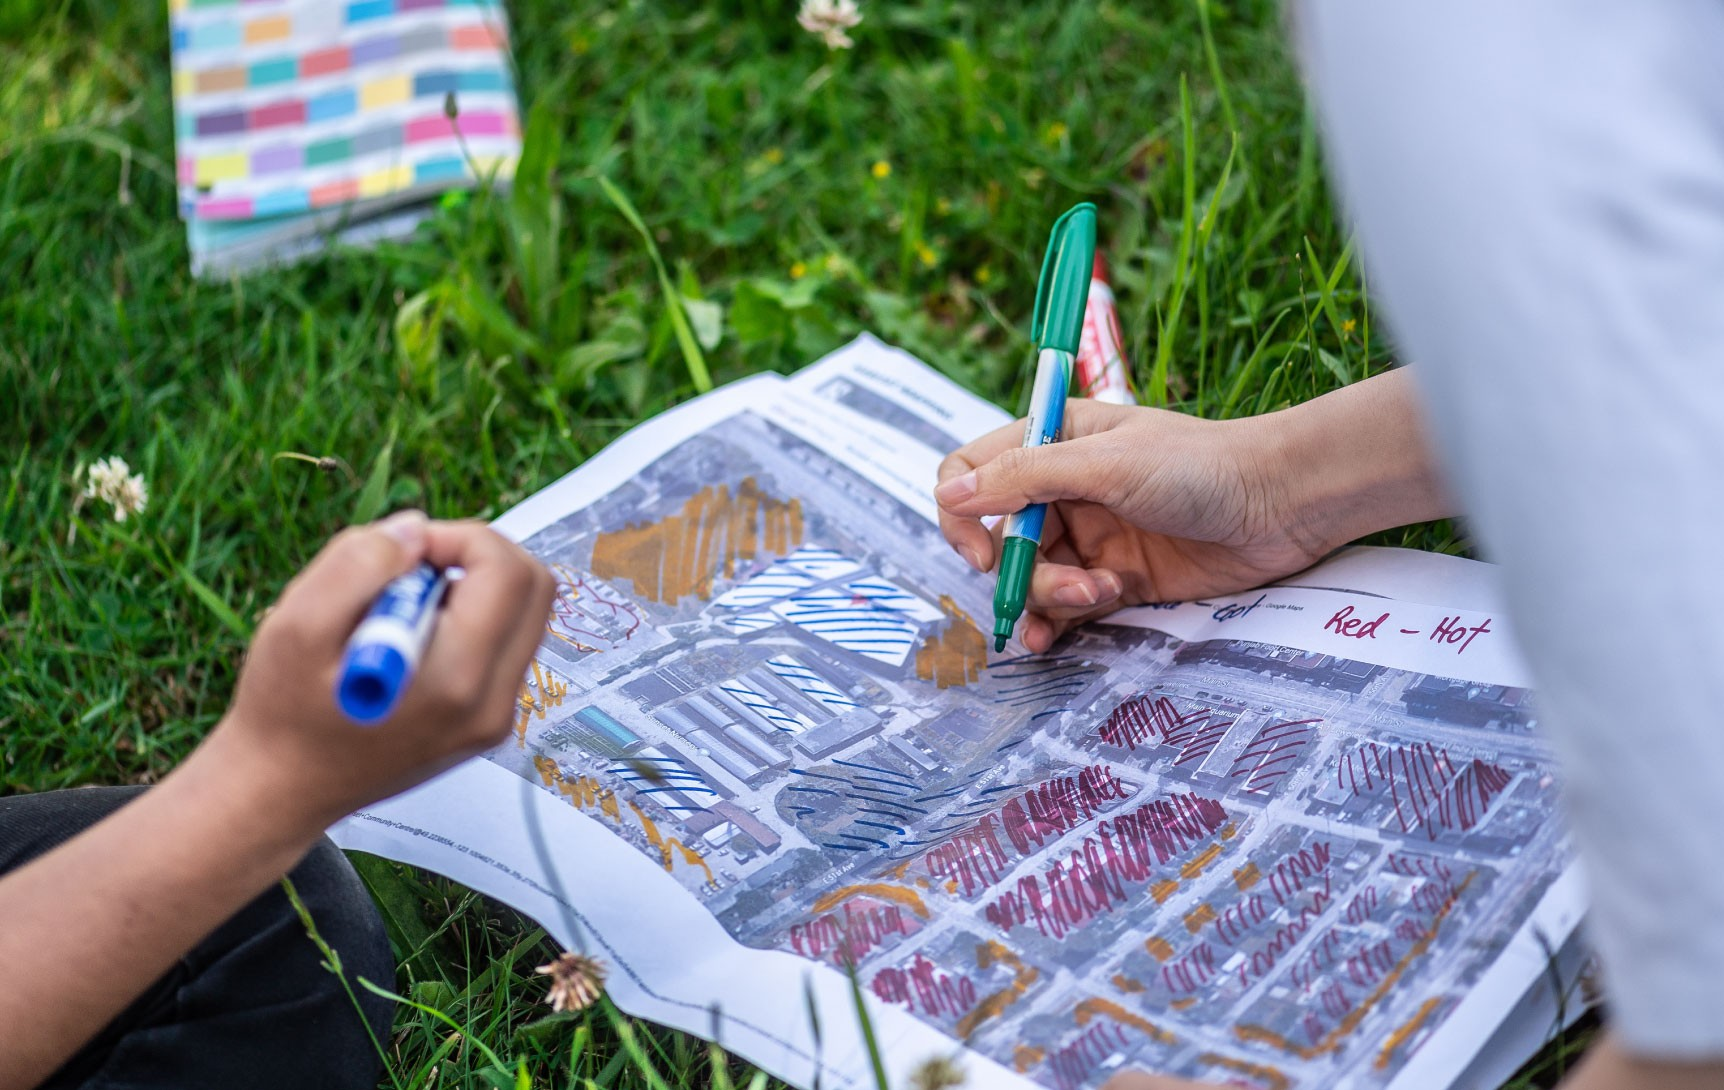 Two people look at a map of the neighbourhood to determine where it is vulnerable to climate change dangers